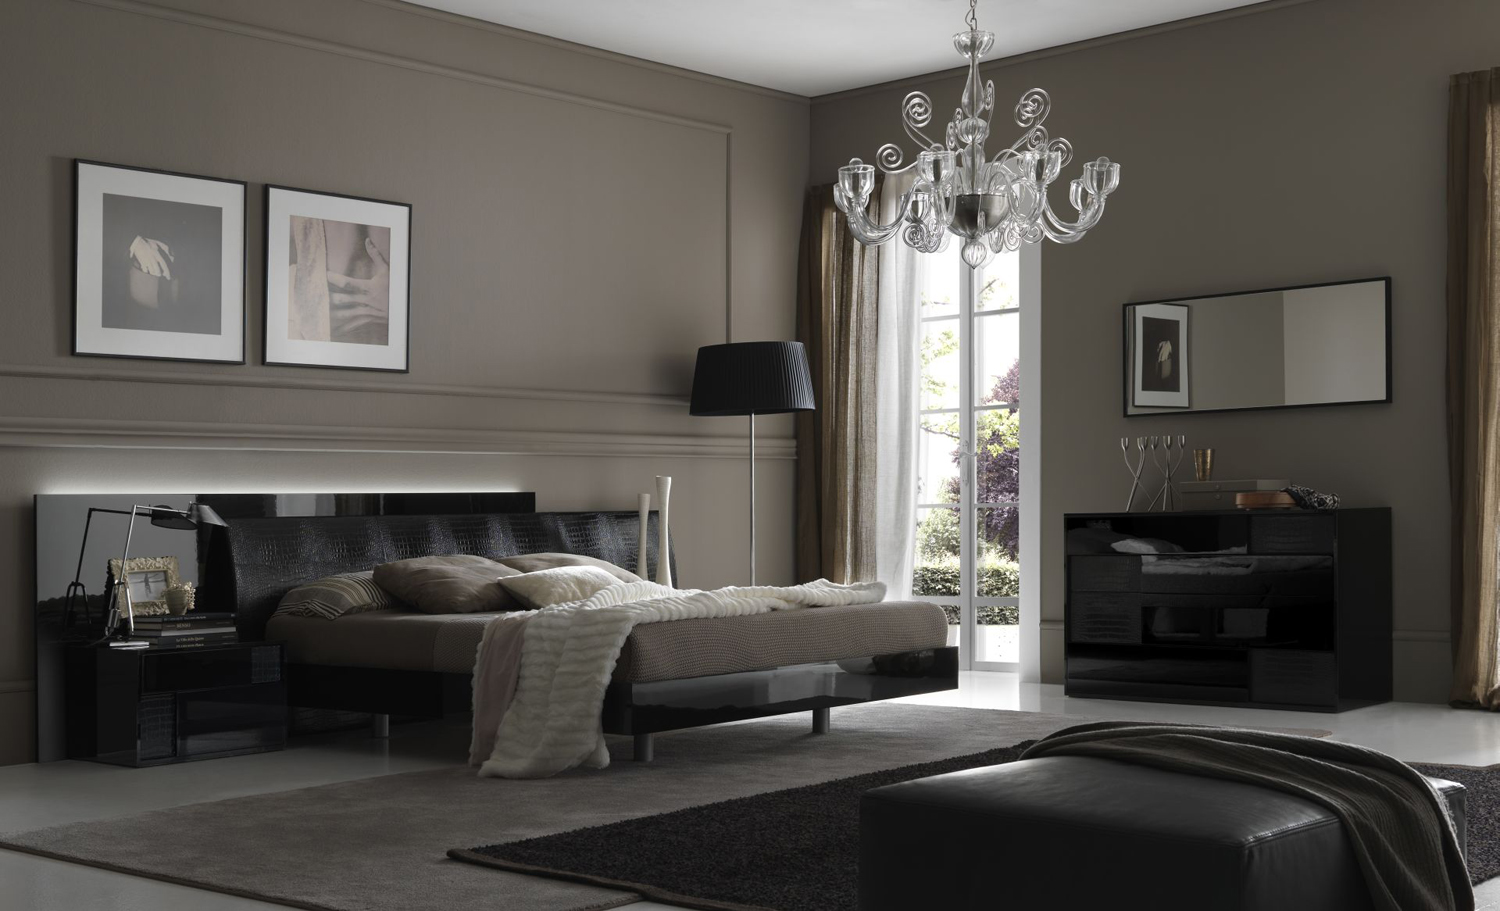 Bedroom decorating ideas from evinco for Contemporary interior design ideas